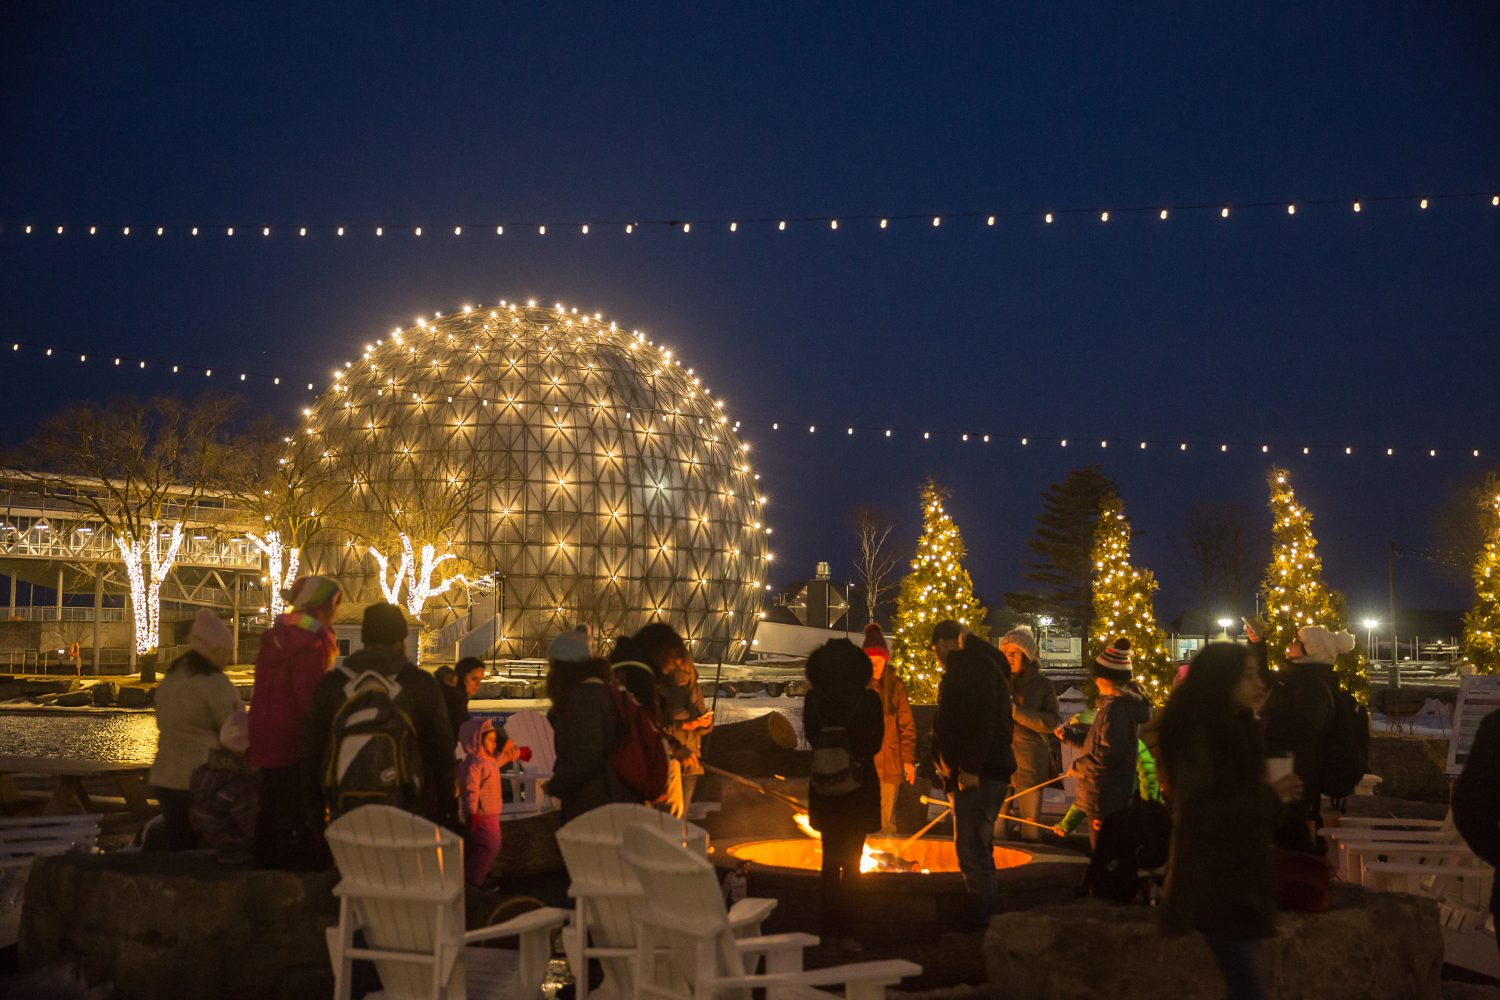 Ontario Place - How to spend the holidays in Toronto